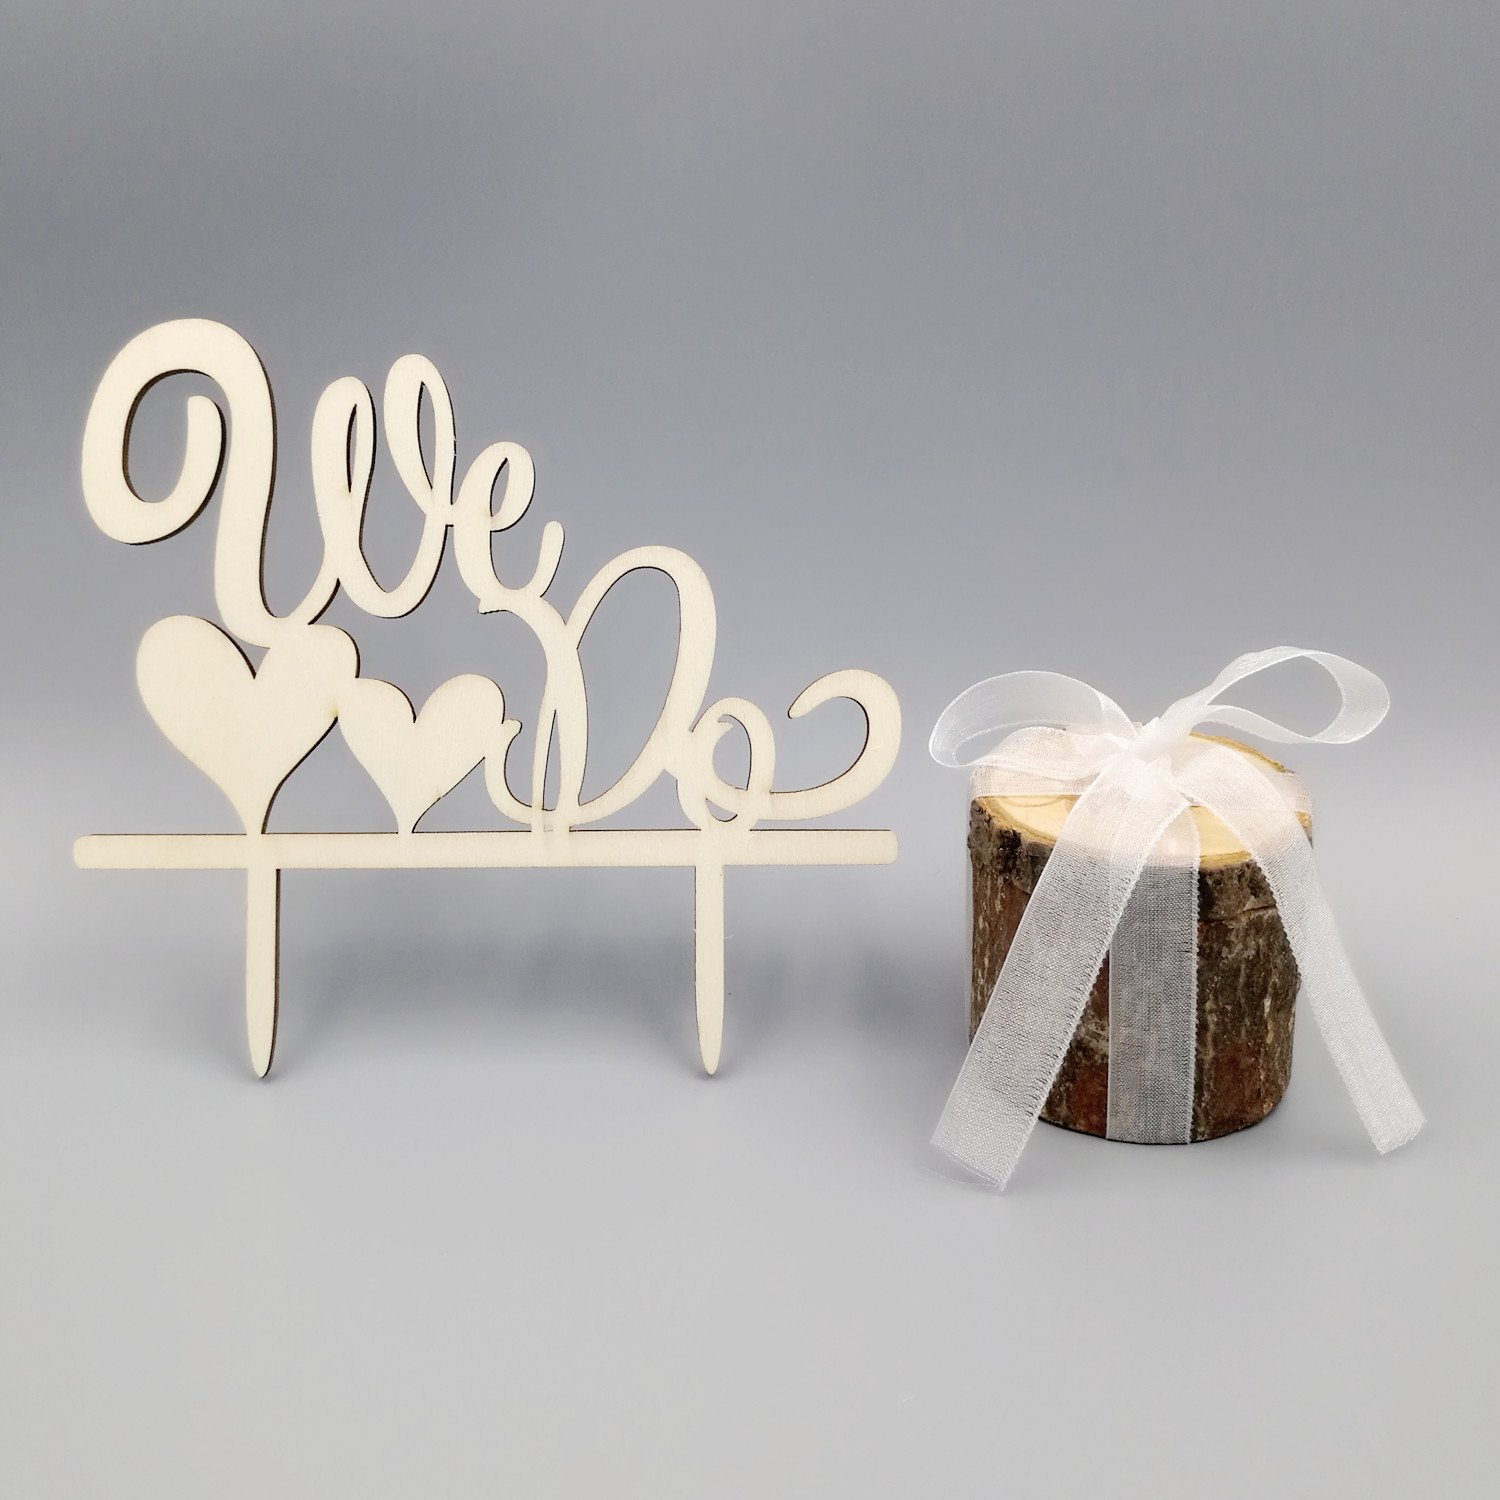 Kalevel 2pcs We Do Wedding Ring Box Cake Cupcake Toppers Rustic Wooden Ring Bearer Box Vintage Personalized Funny Wedding Cake Toppers Decorations Cake Insert Card Ring Holder for Wedding Ceremony by Kalevel (Image #6)